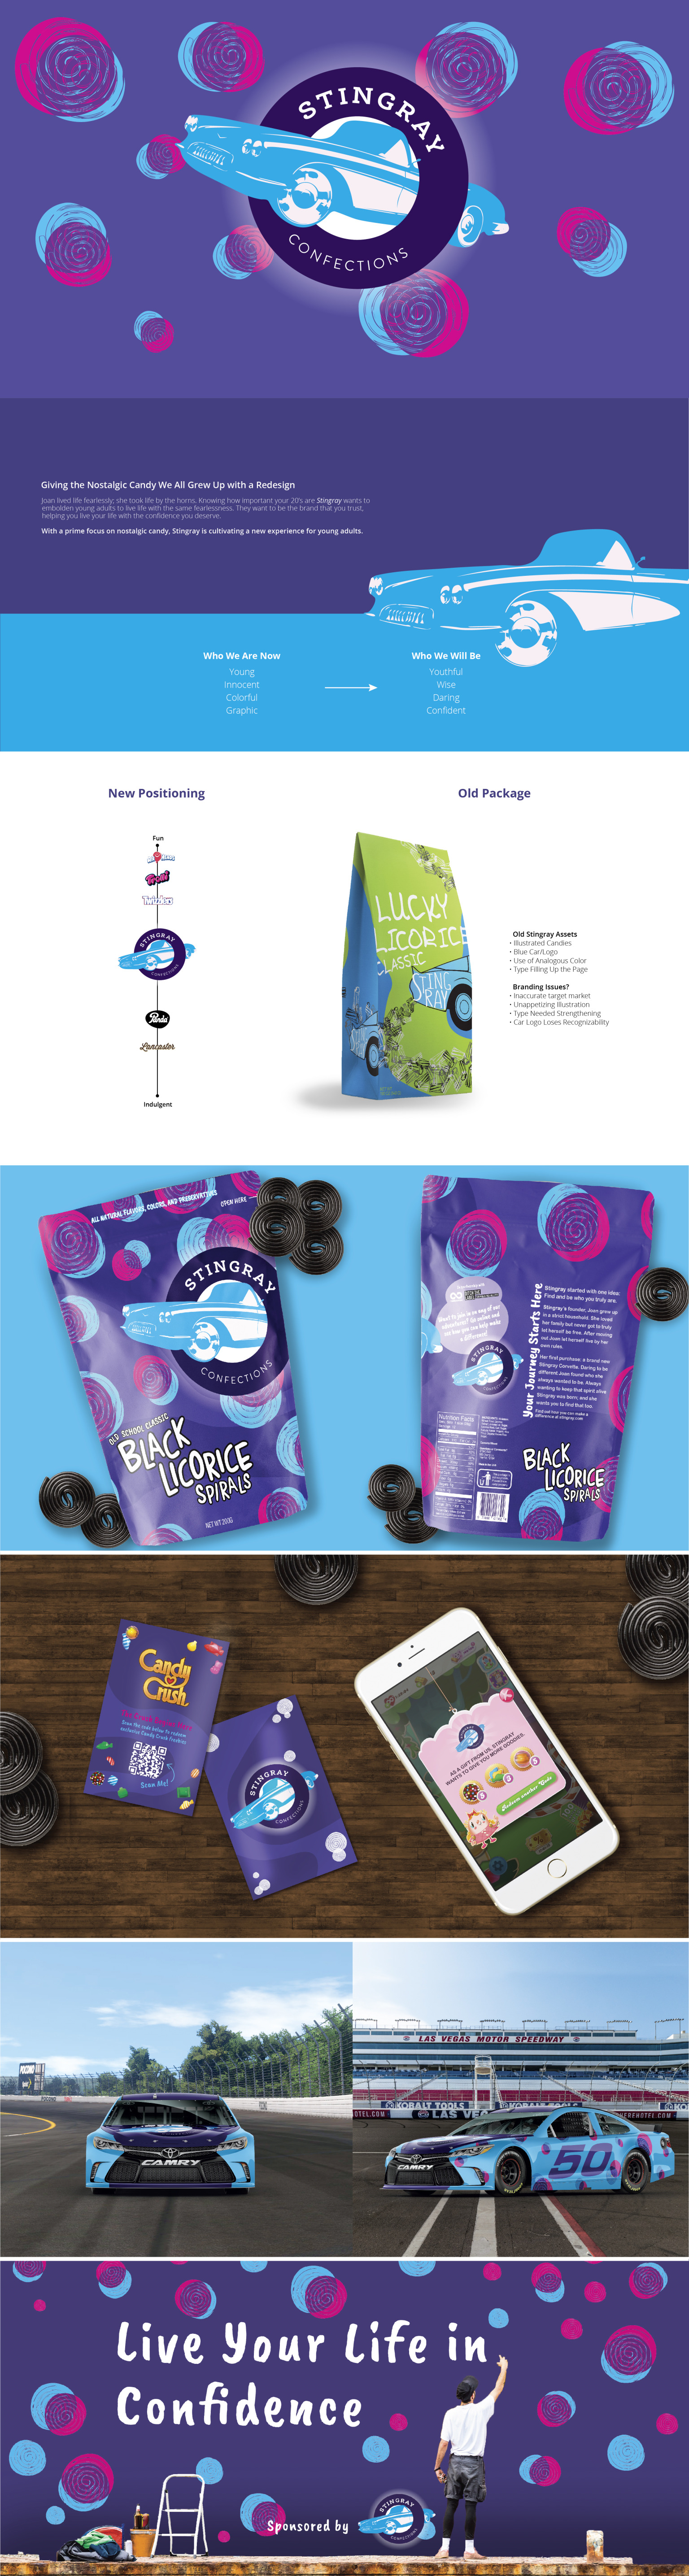 Stingray Confections Redesign